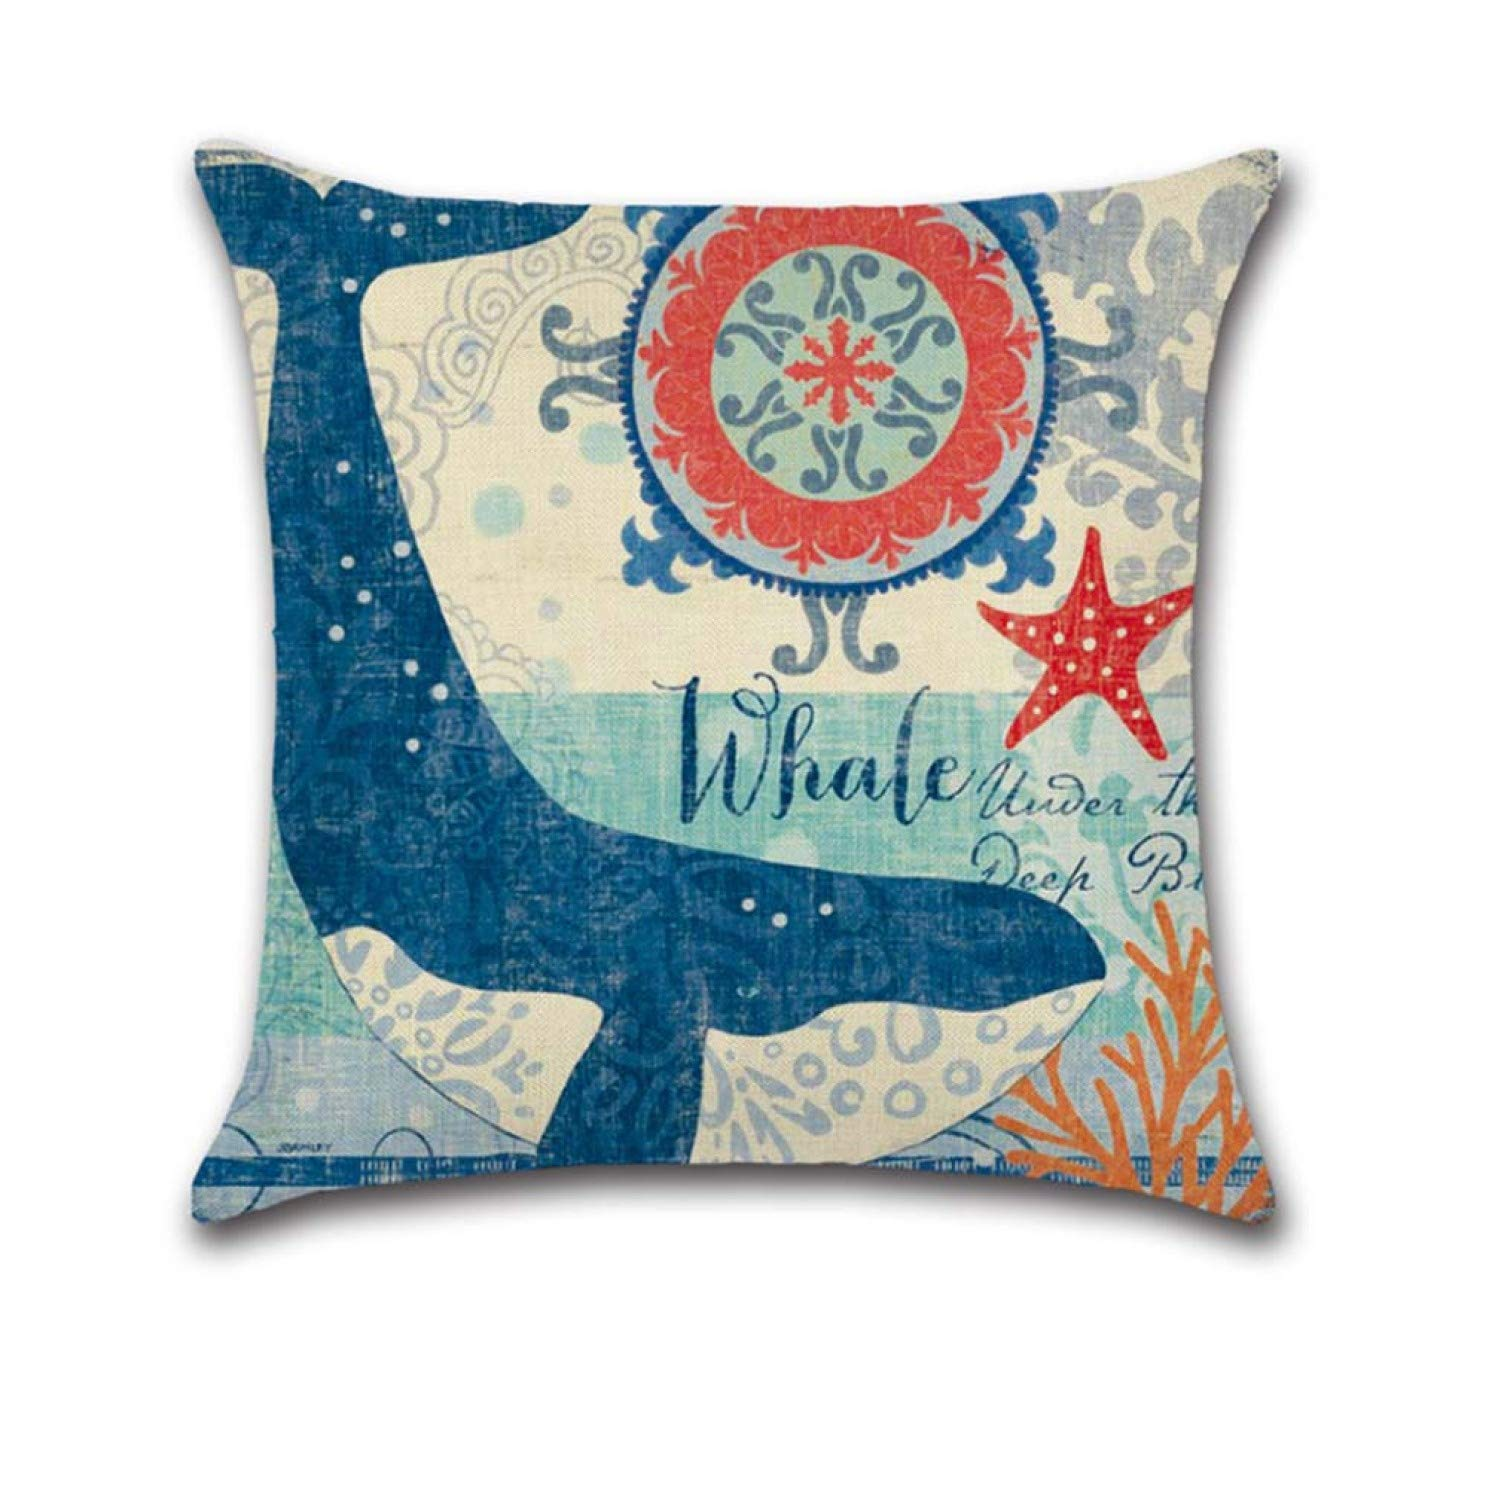 None octopus Srbosheng Advanced Personality Octopus Turtle Decoration Cushion Pillow Best Sea Case Covers Bedroom Horse Sofa Ocean Casual Sofa decoration